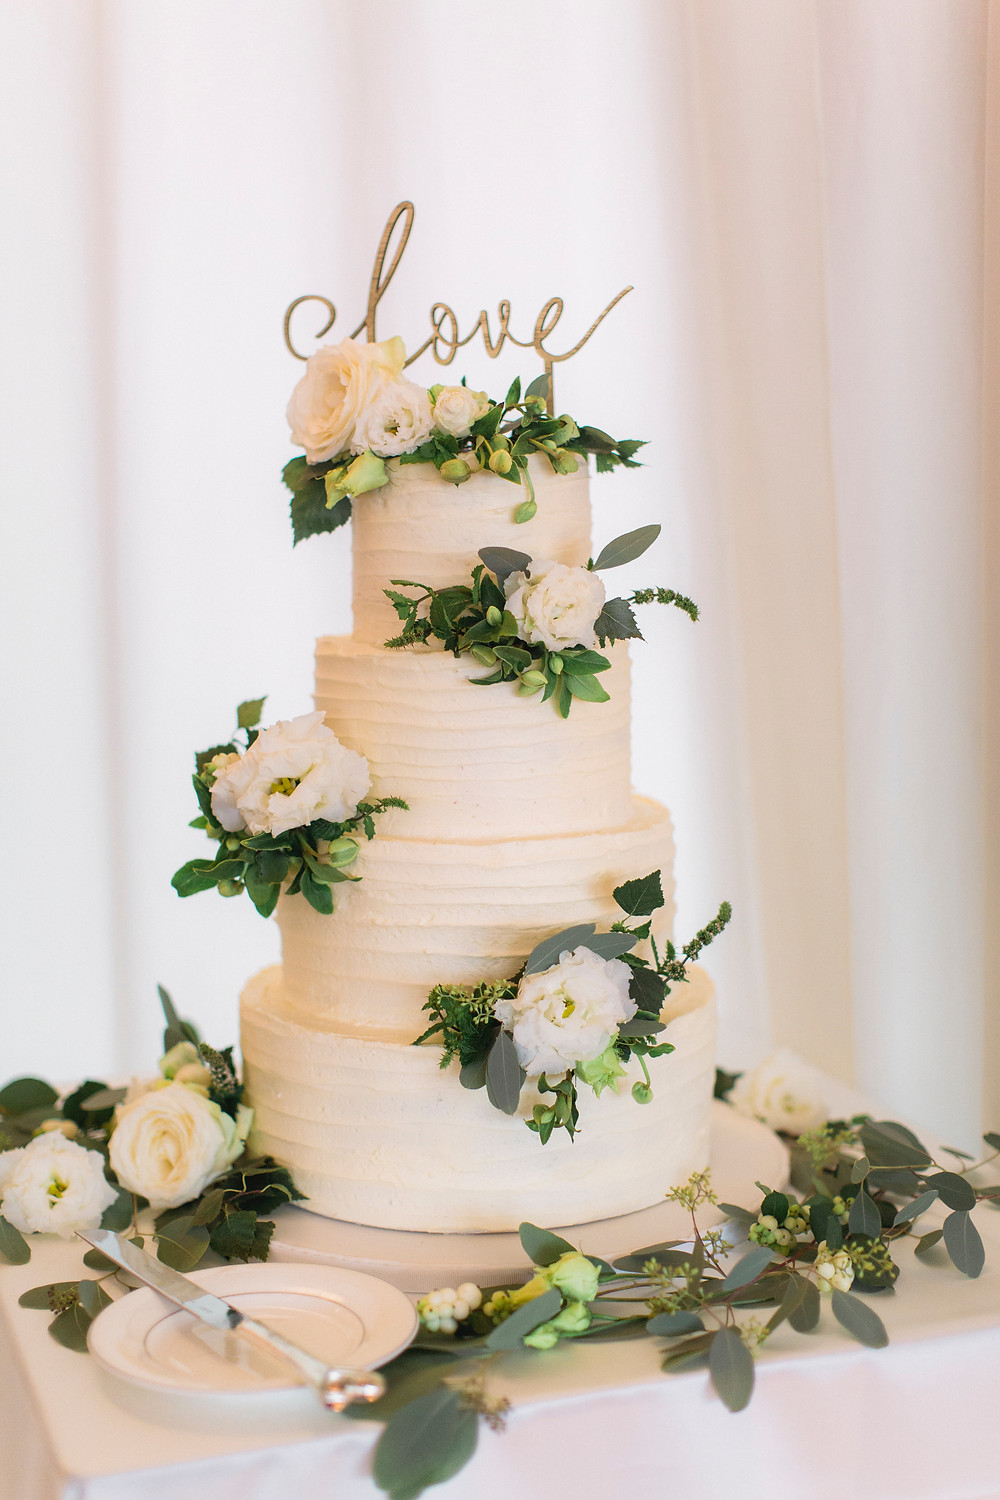 Broken Spoon Cakes | Rustic Buttercream Beauty Wedding Cake | Image by Magda Lukas Photography